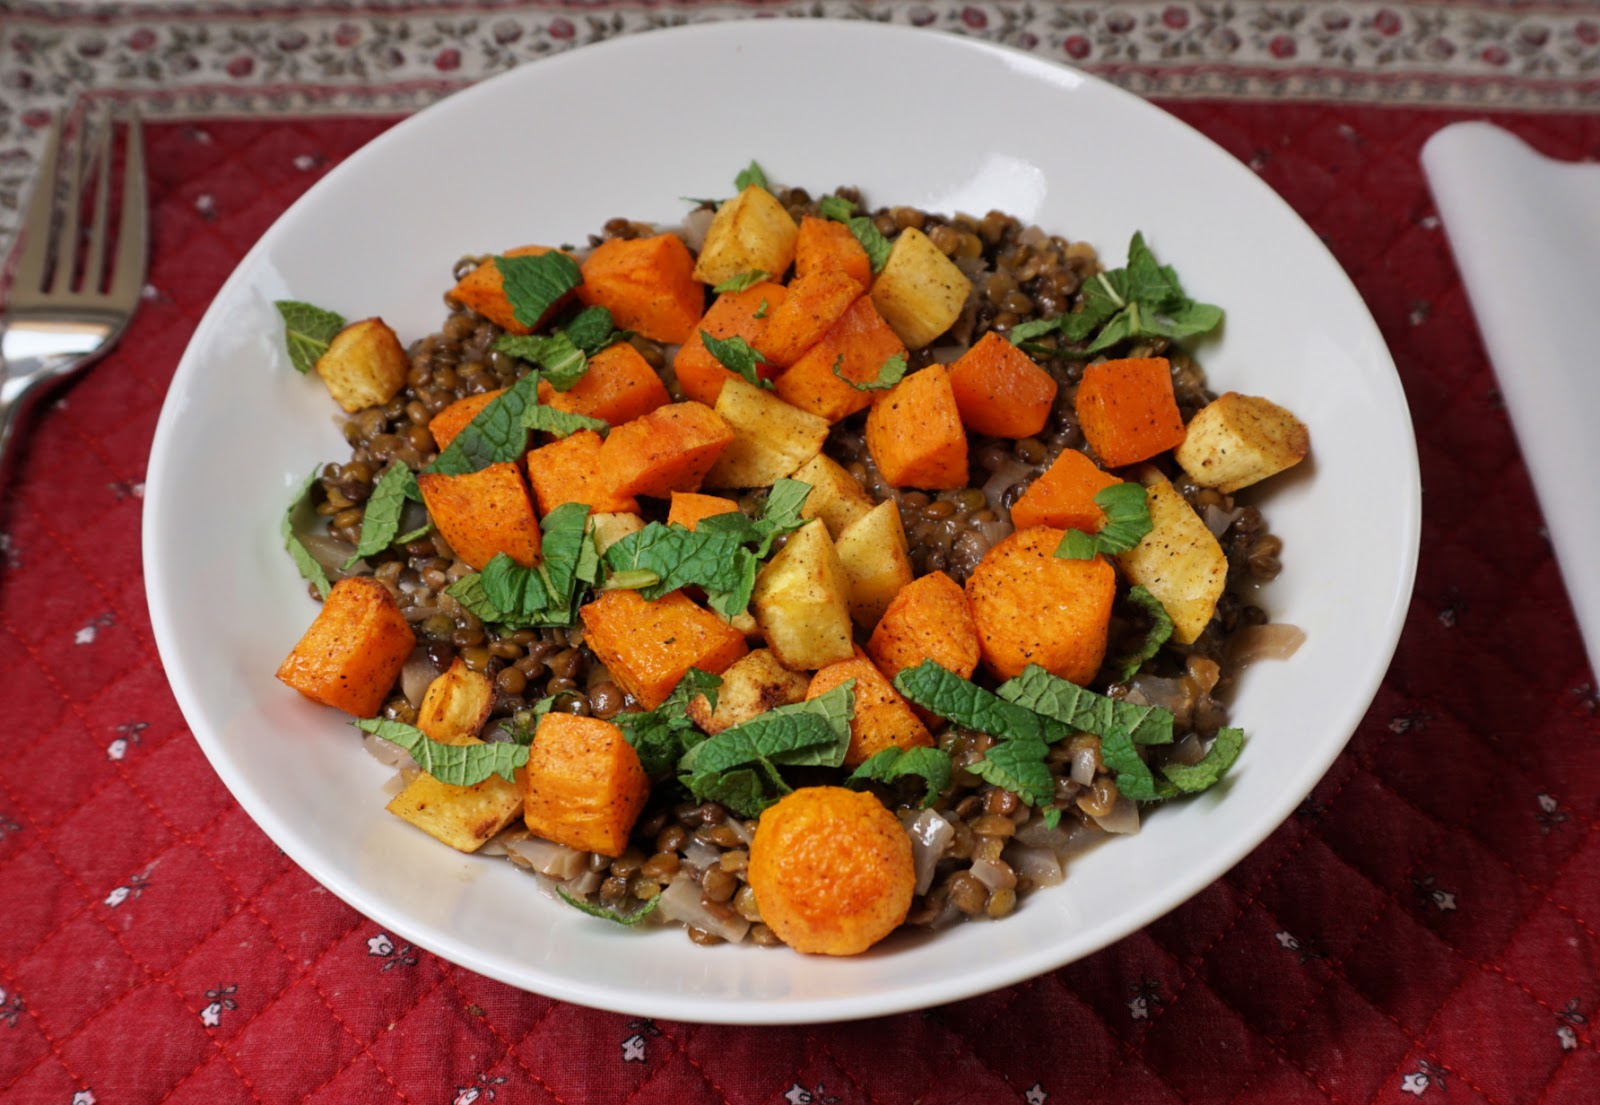 Green lentil risotto with roasted root vegetables